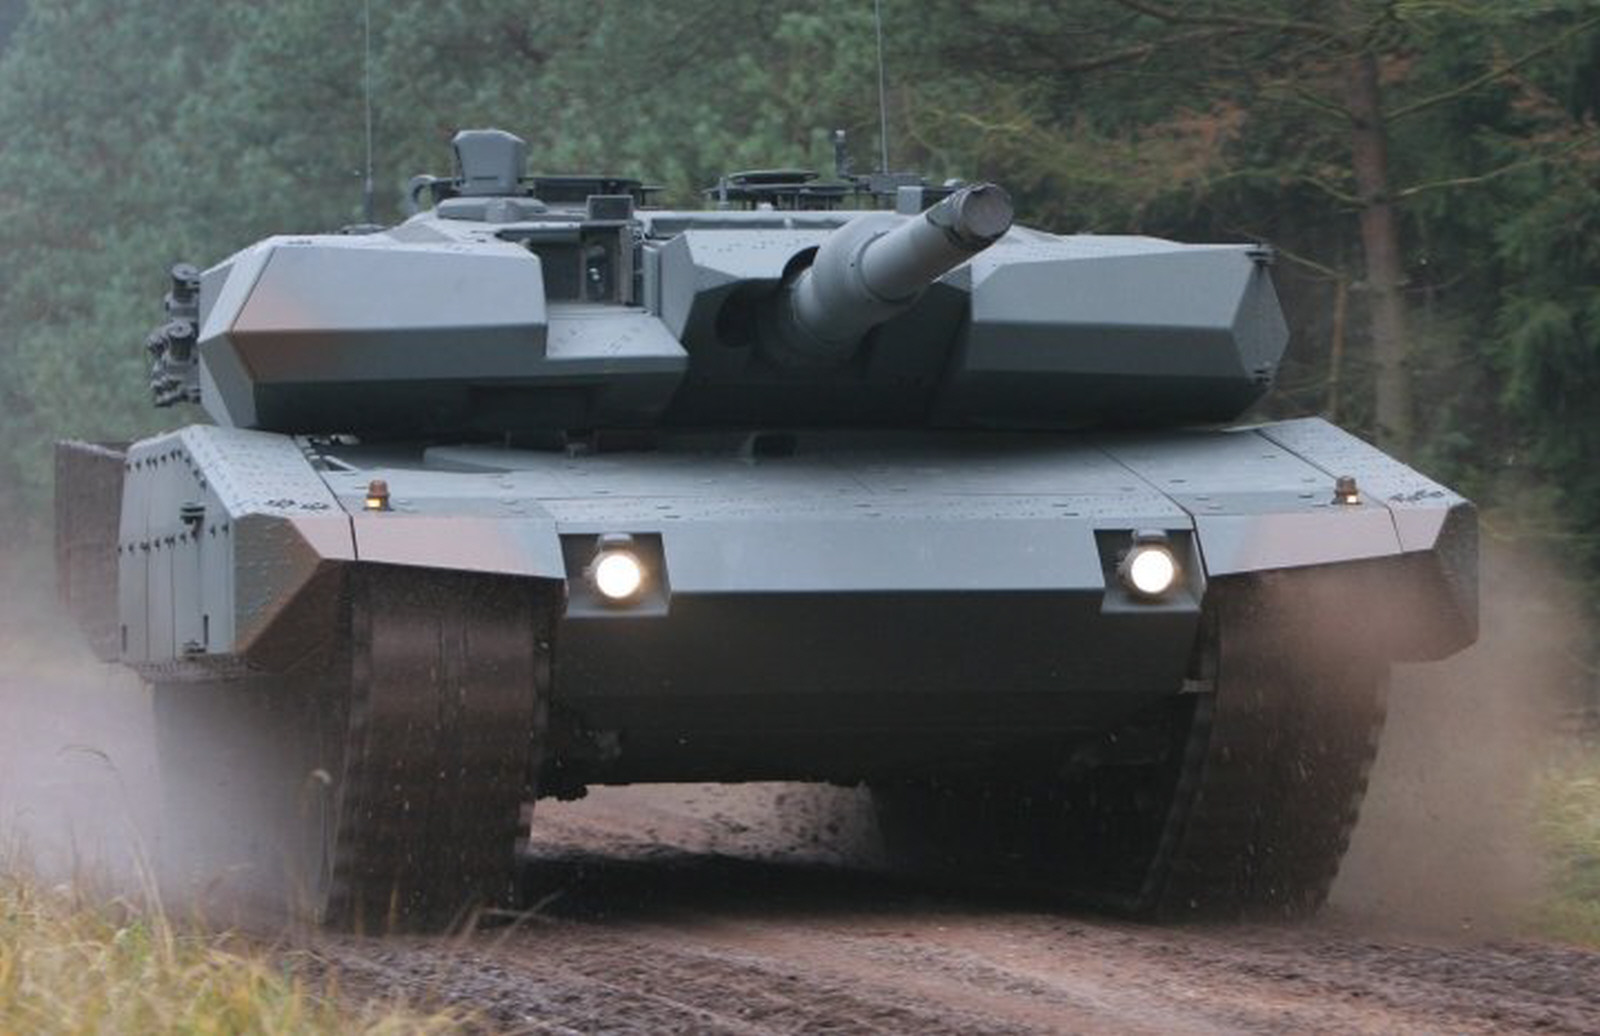 Leopard 2A4 Evolution with AMAP-R Roof Armour (3 фотографии)